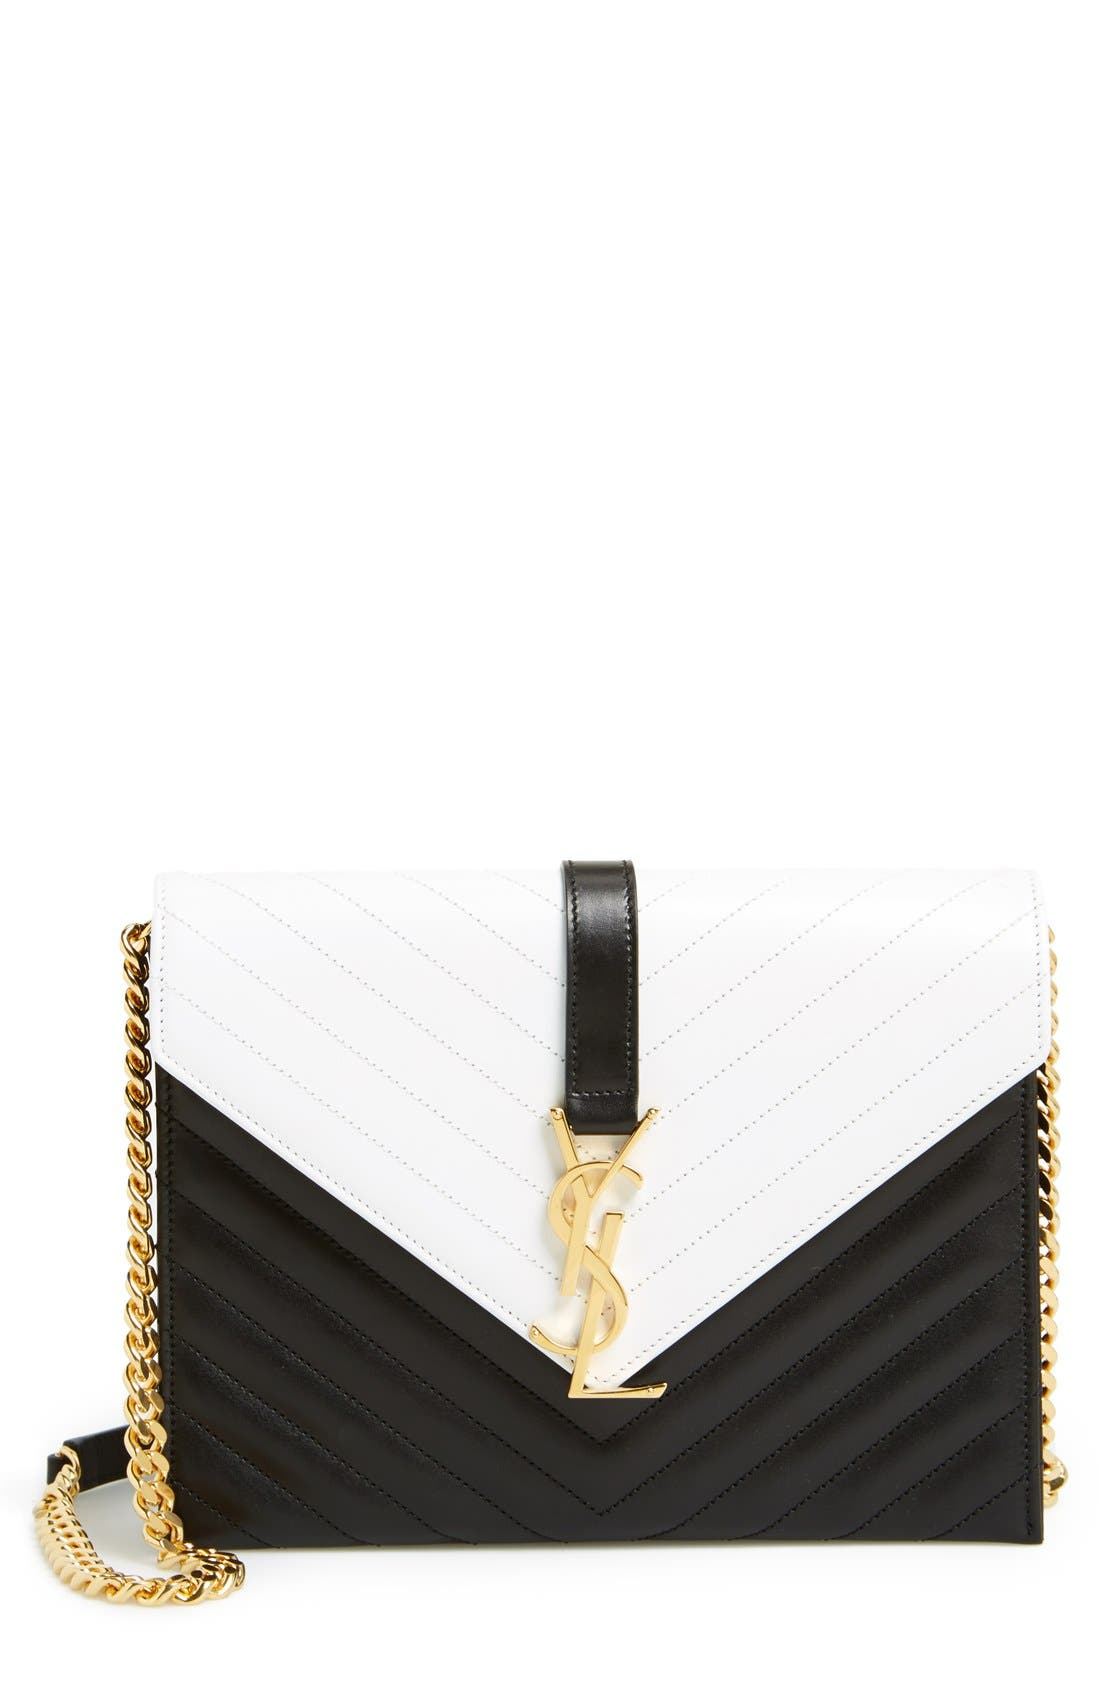 Main Image - Saint Laurent 'Cassandre' Shoulder Bag